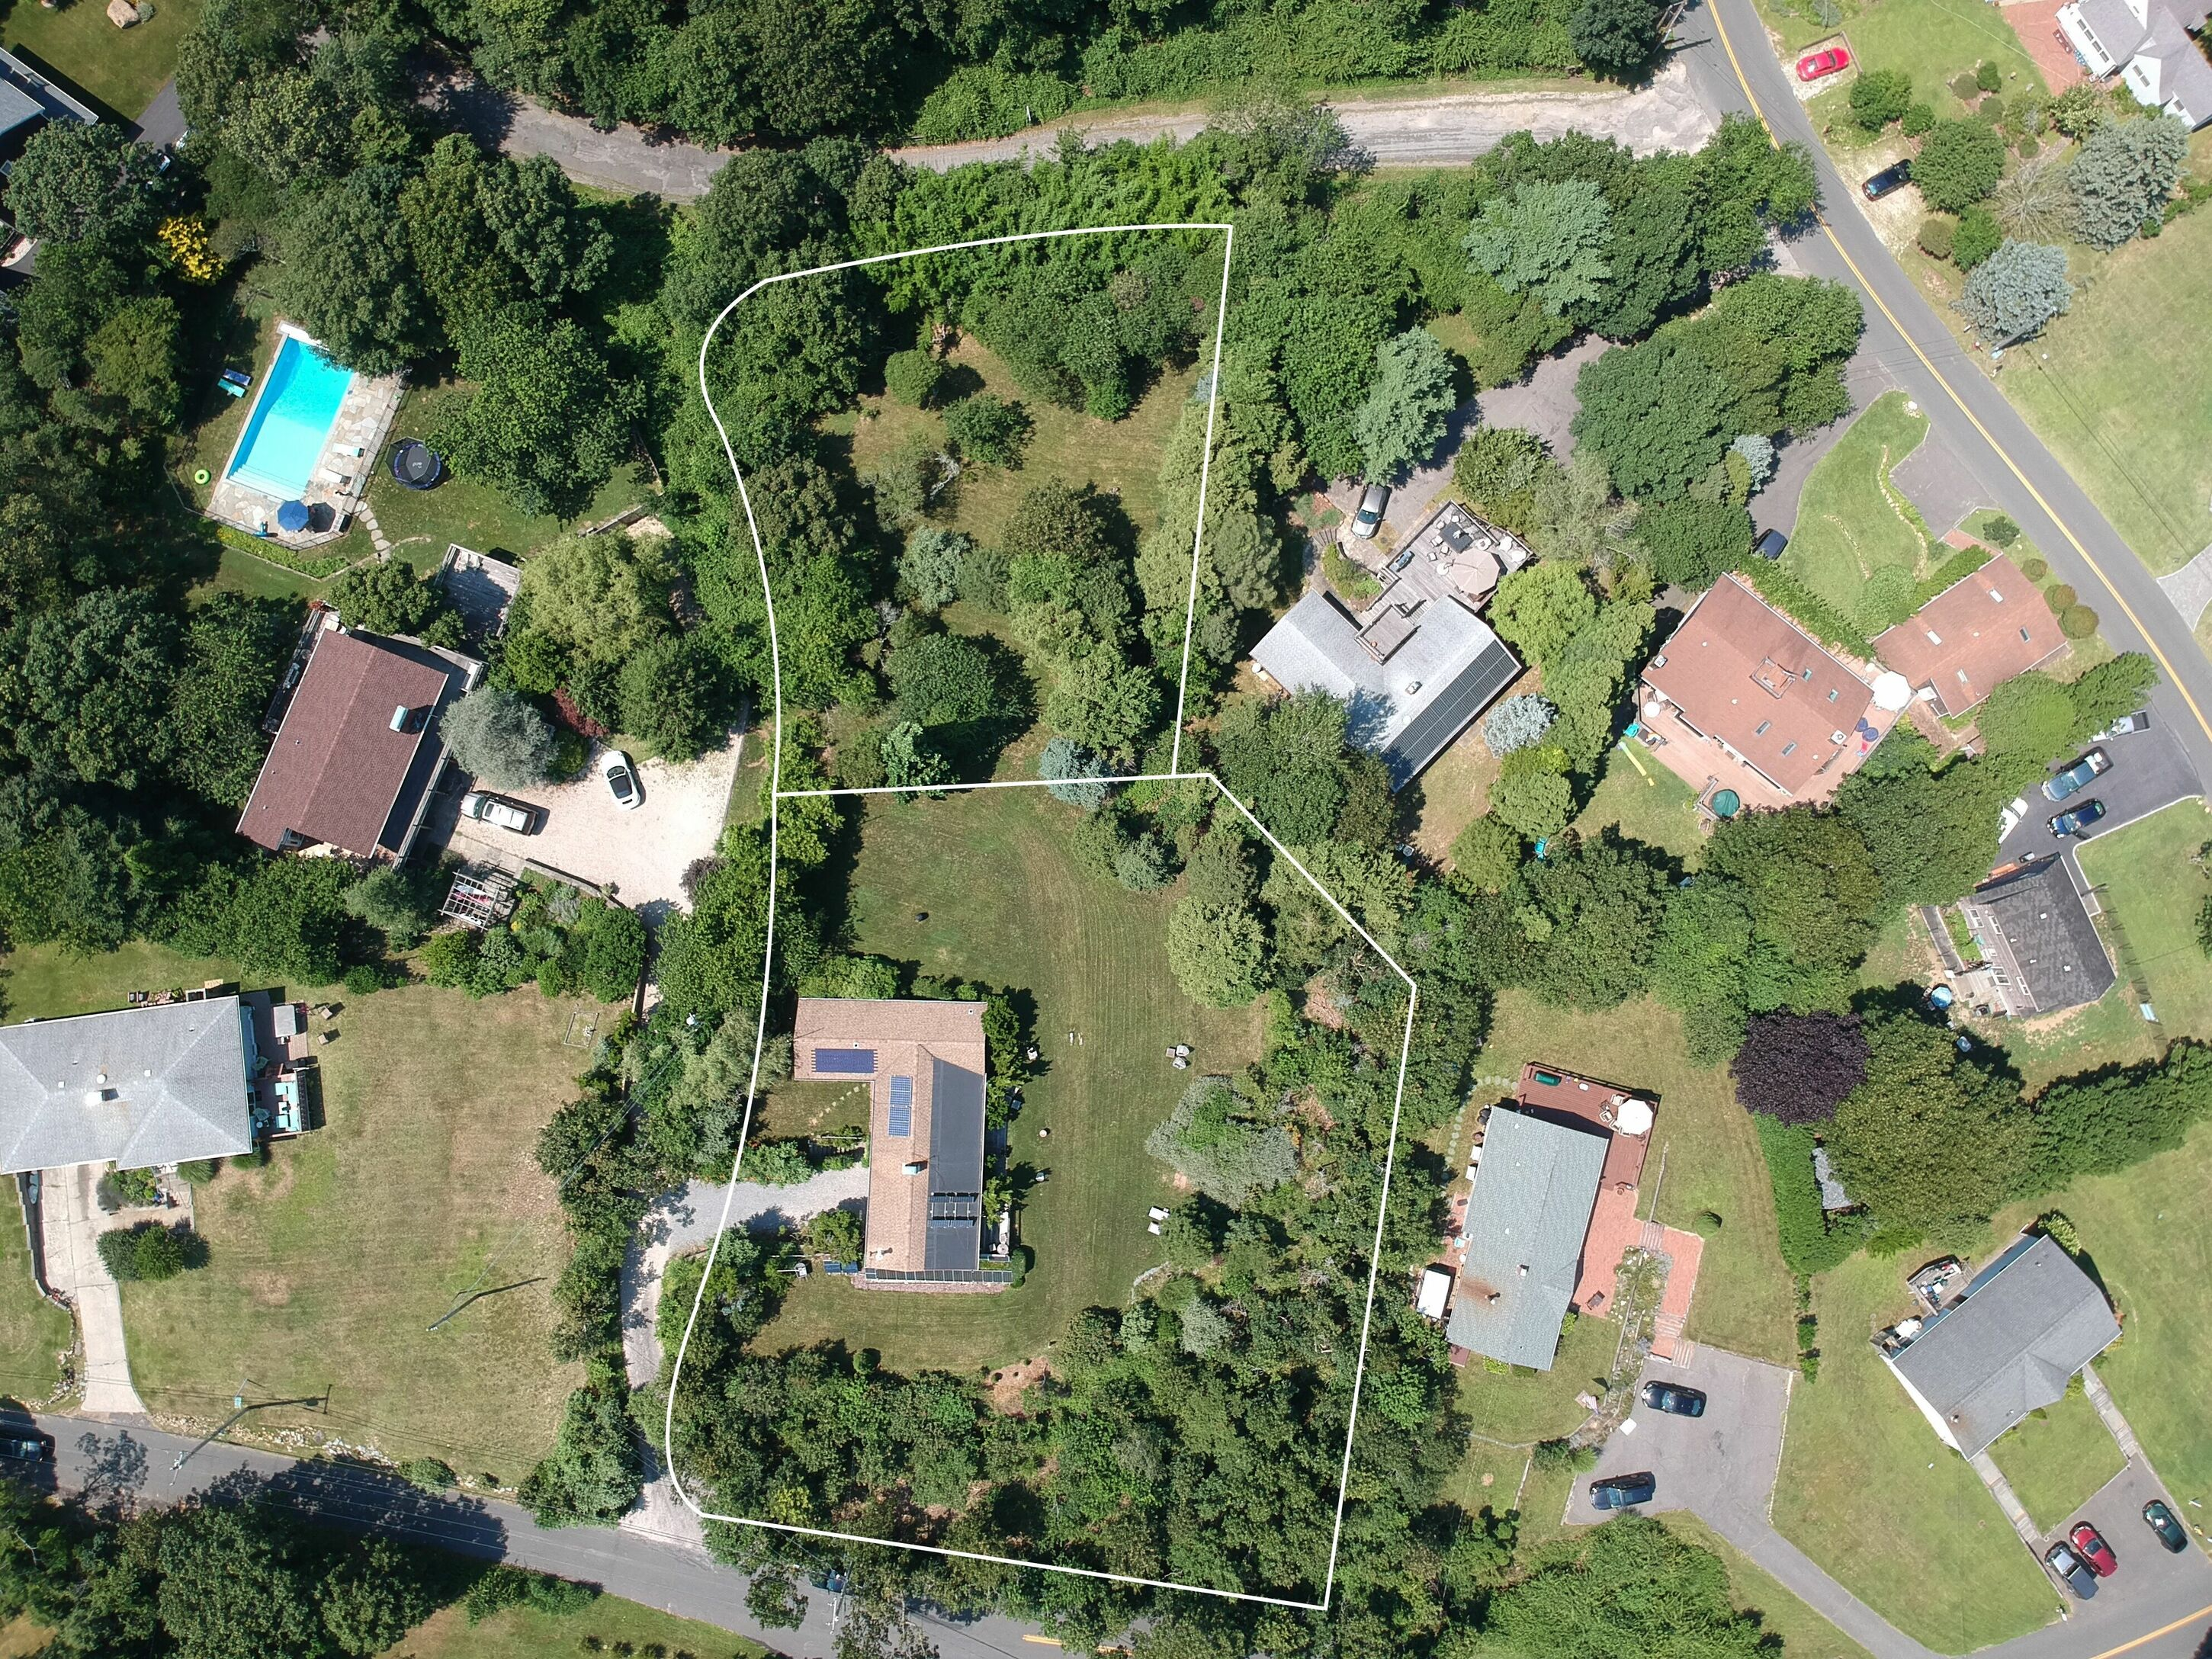 64 South Delrey Rd and 30 South Duncan Dr - Montauk, New York